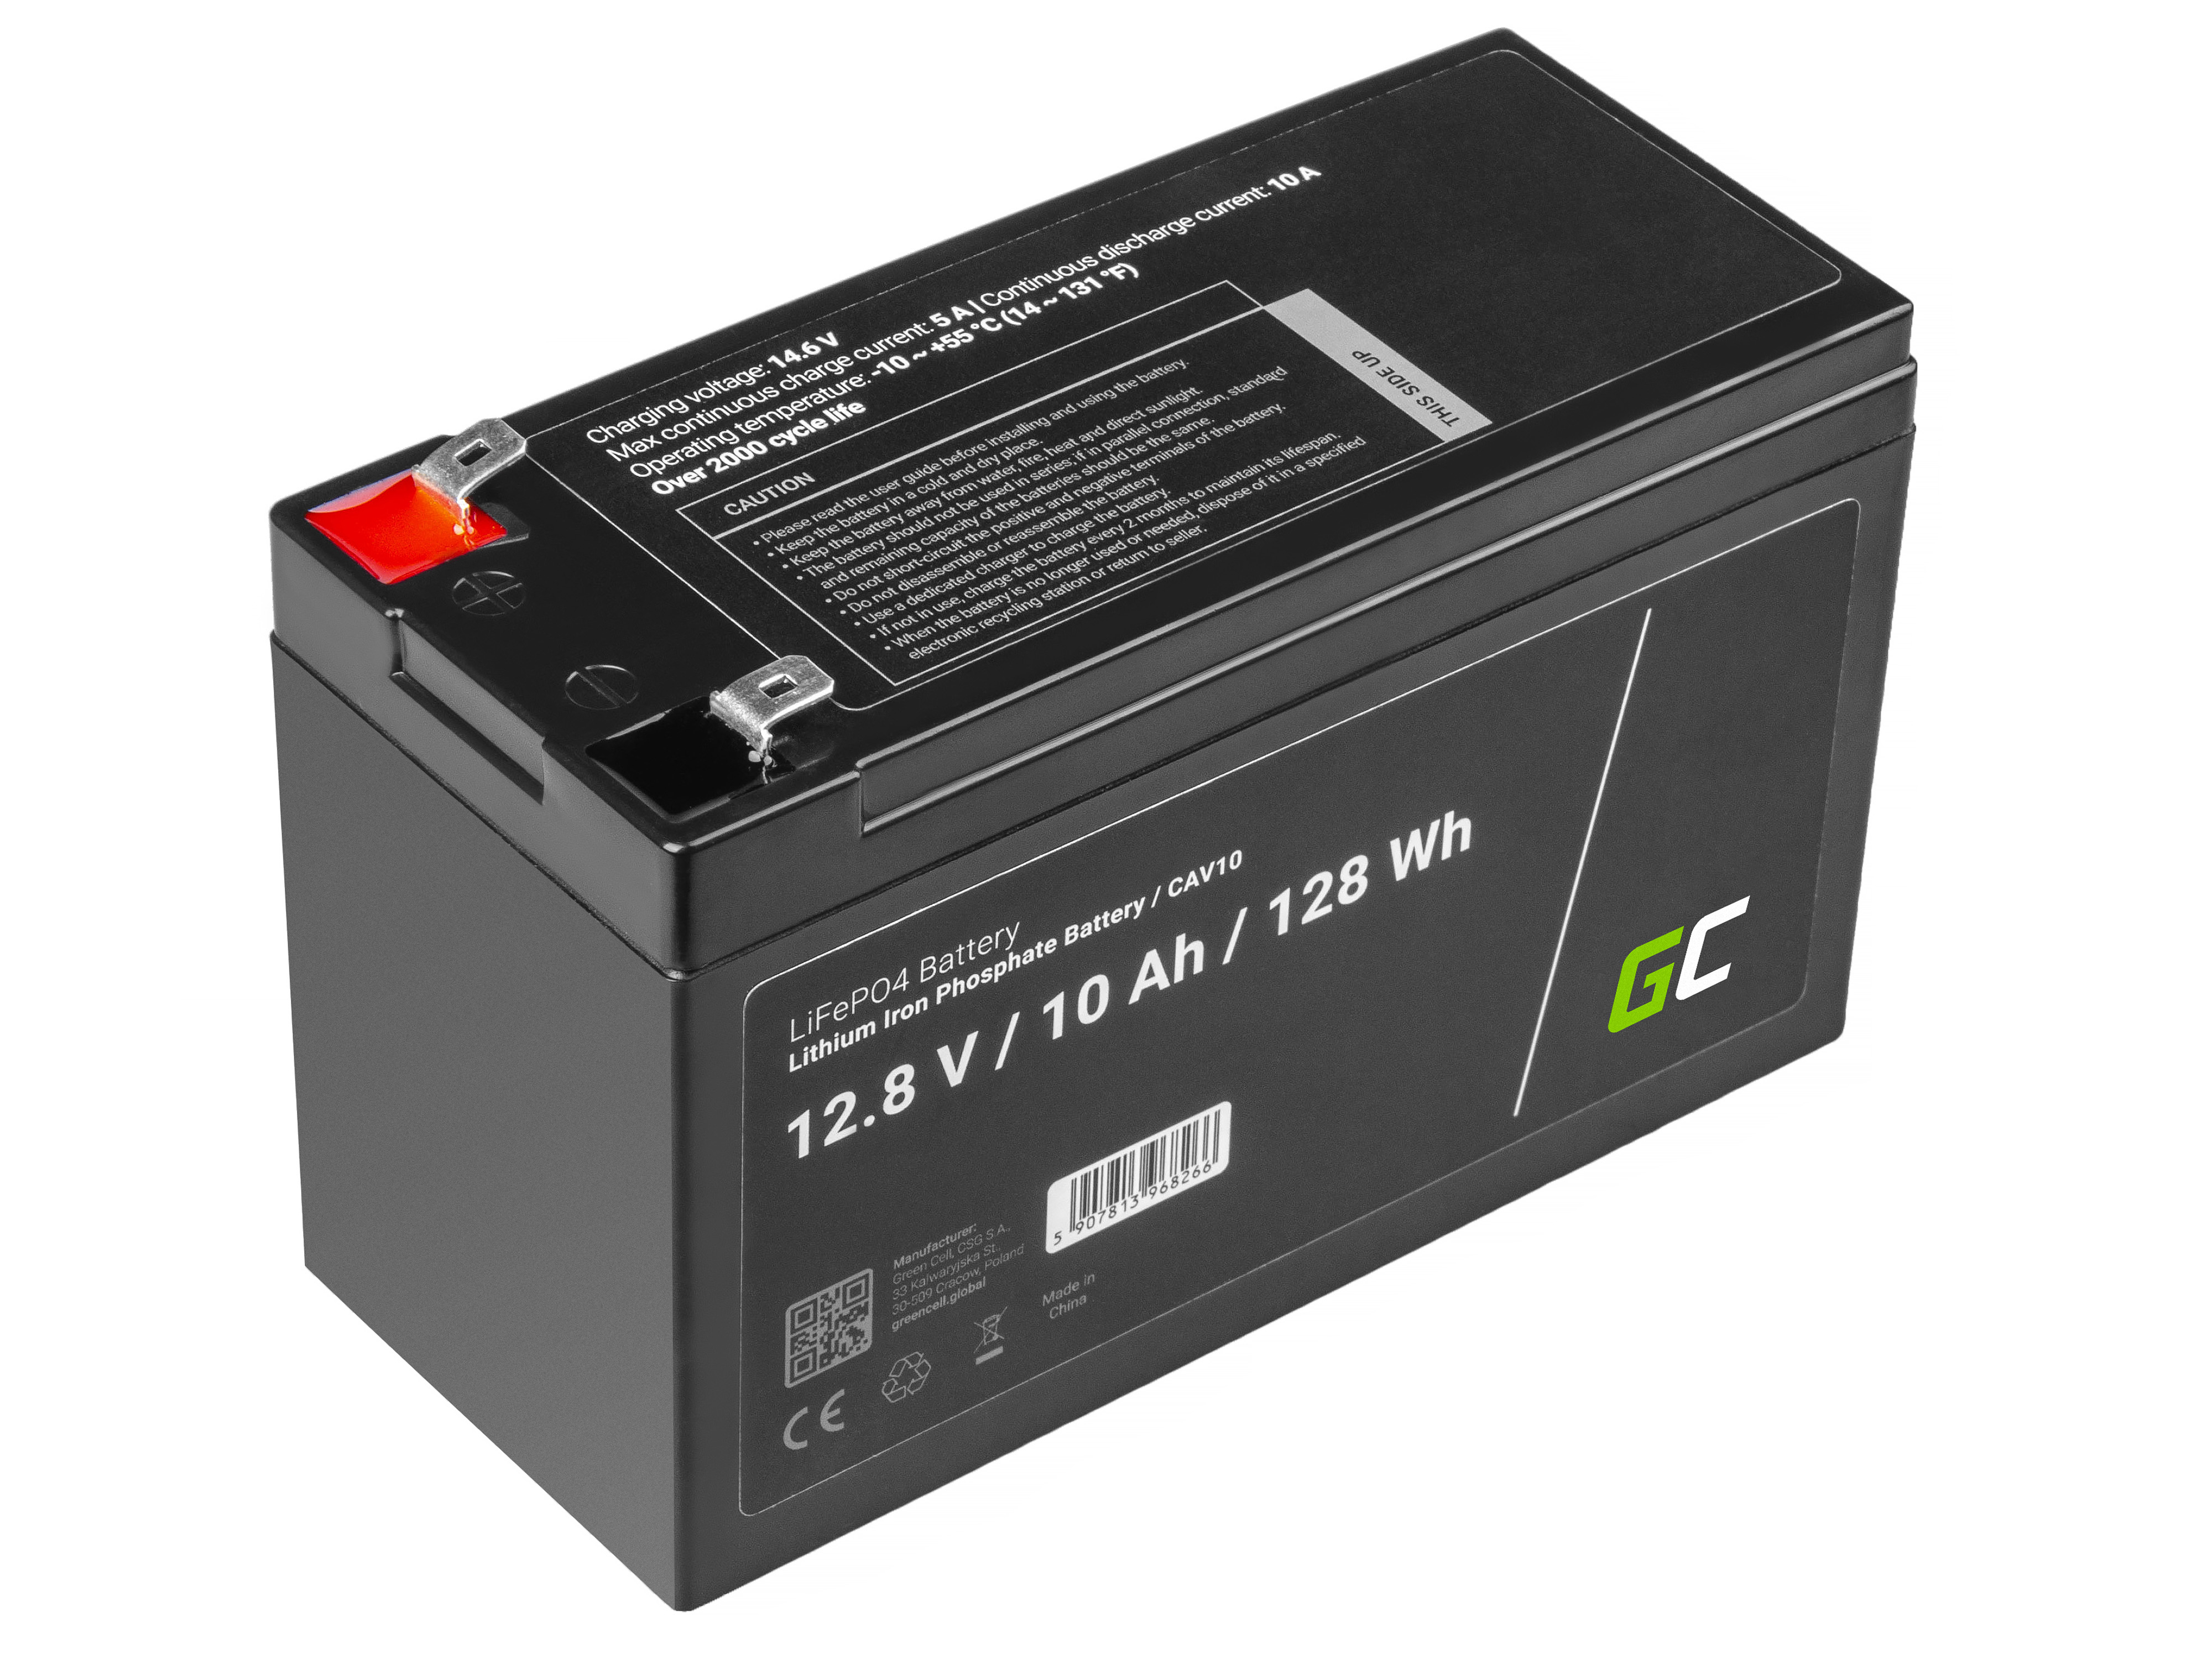 Battery Lithium-iron-phosphate LiFePO4 12V 12.8V 10Ah for photovoltaic system, campers and boats